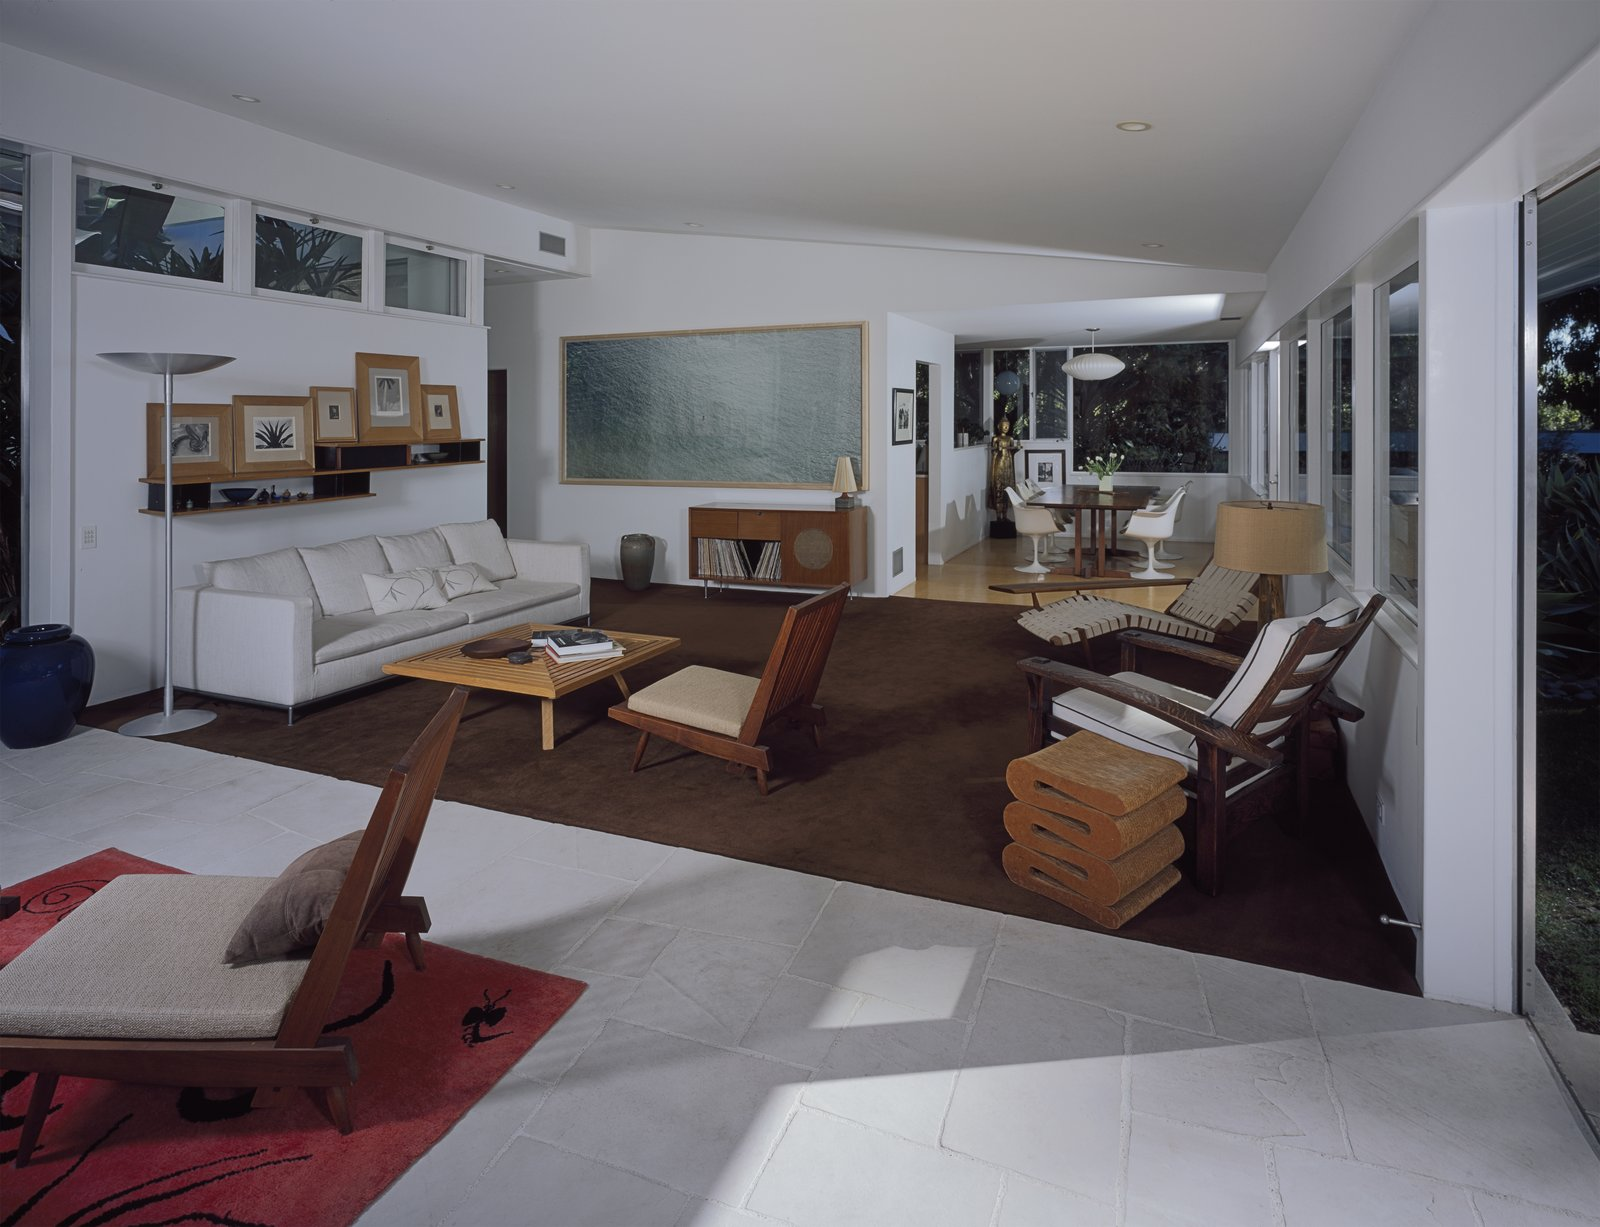 """Living Room The main space containing the living and dining area and kitchen was relatively unchanged. """"In consideration of the original vision, the additions blend with the original structure, and the basic idea of the open flow between the inside and the outside is maintained and reinforced in all areas,"""" the architect says.  Photo 5 of 6 in A Neutra Renovation in Los Angeles"""